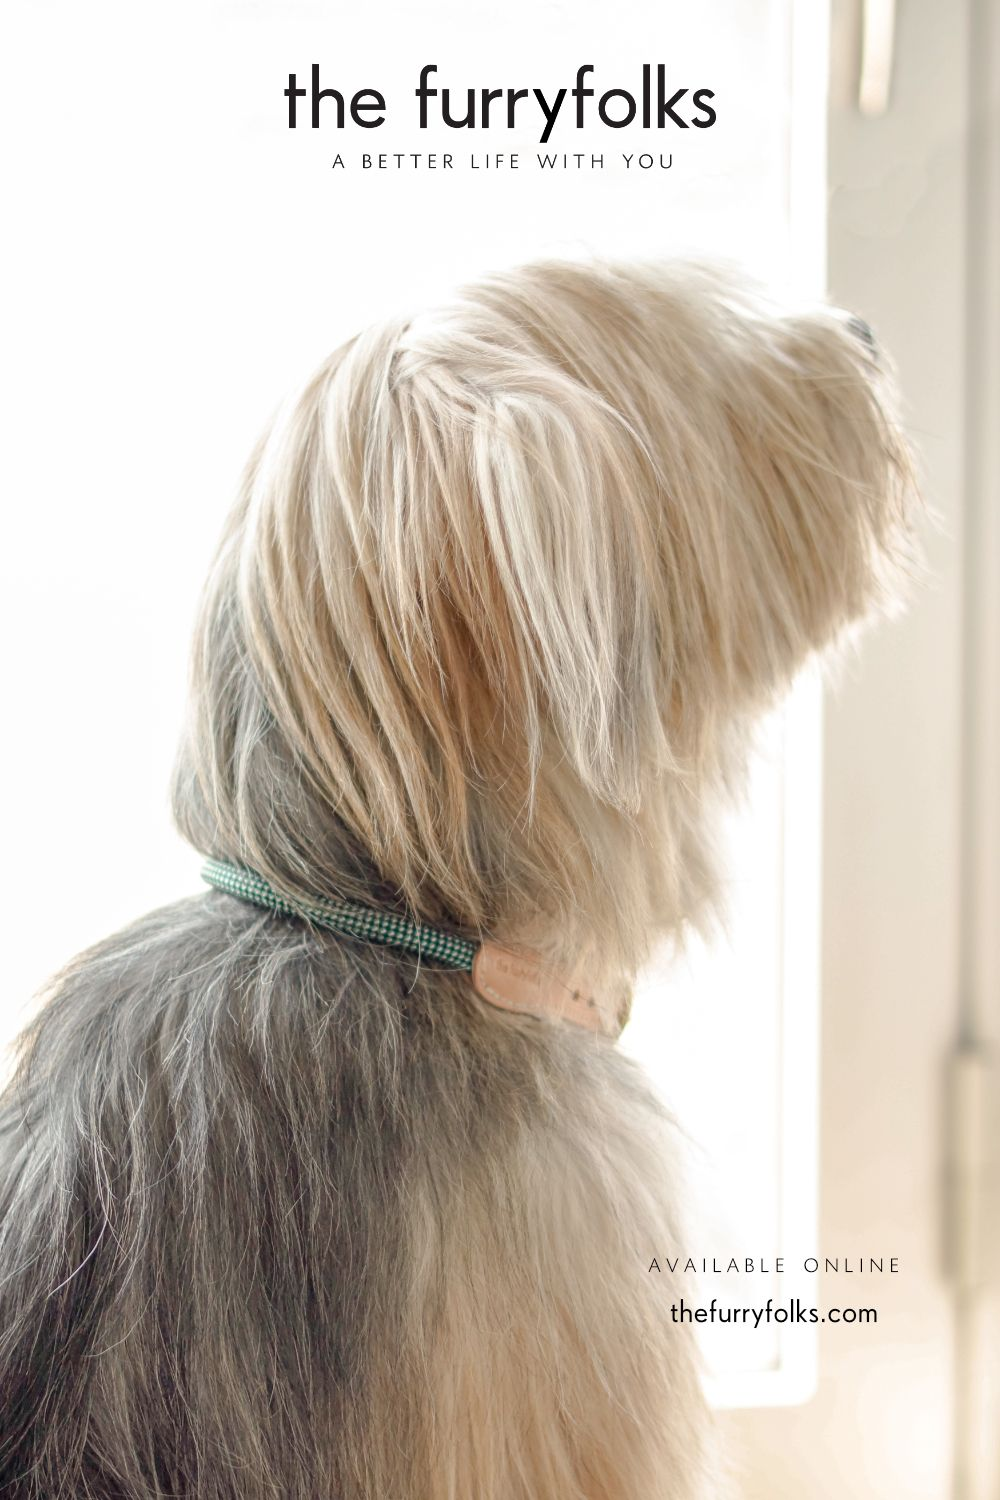 The Furryfolks Is A Lifestyle Brand For The Animal Companions We Create Timeless Pet Products Using Only High Better Life Animal Companions Lifestyle Brands